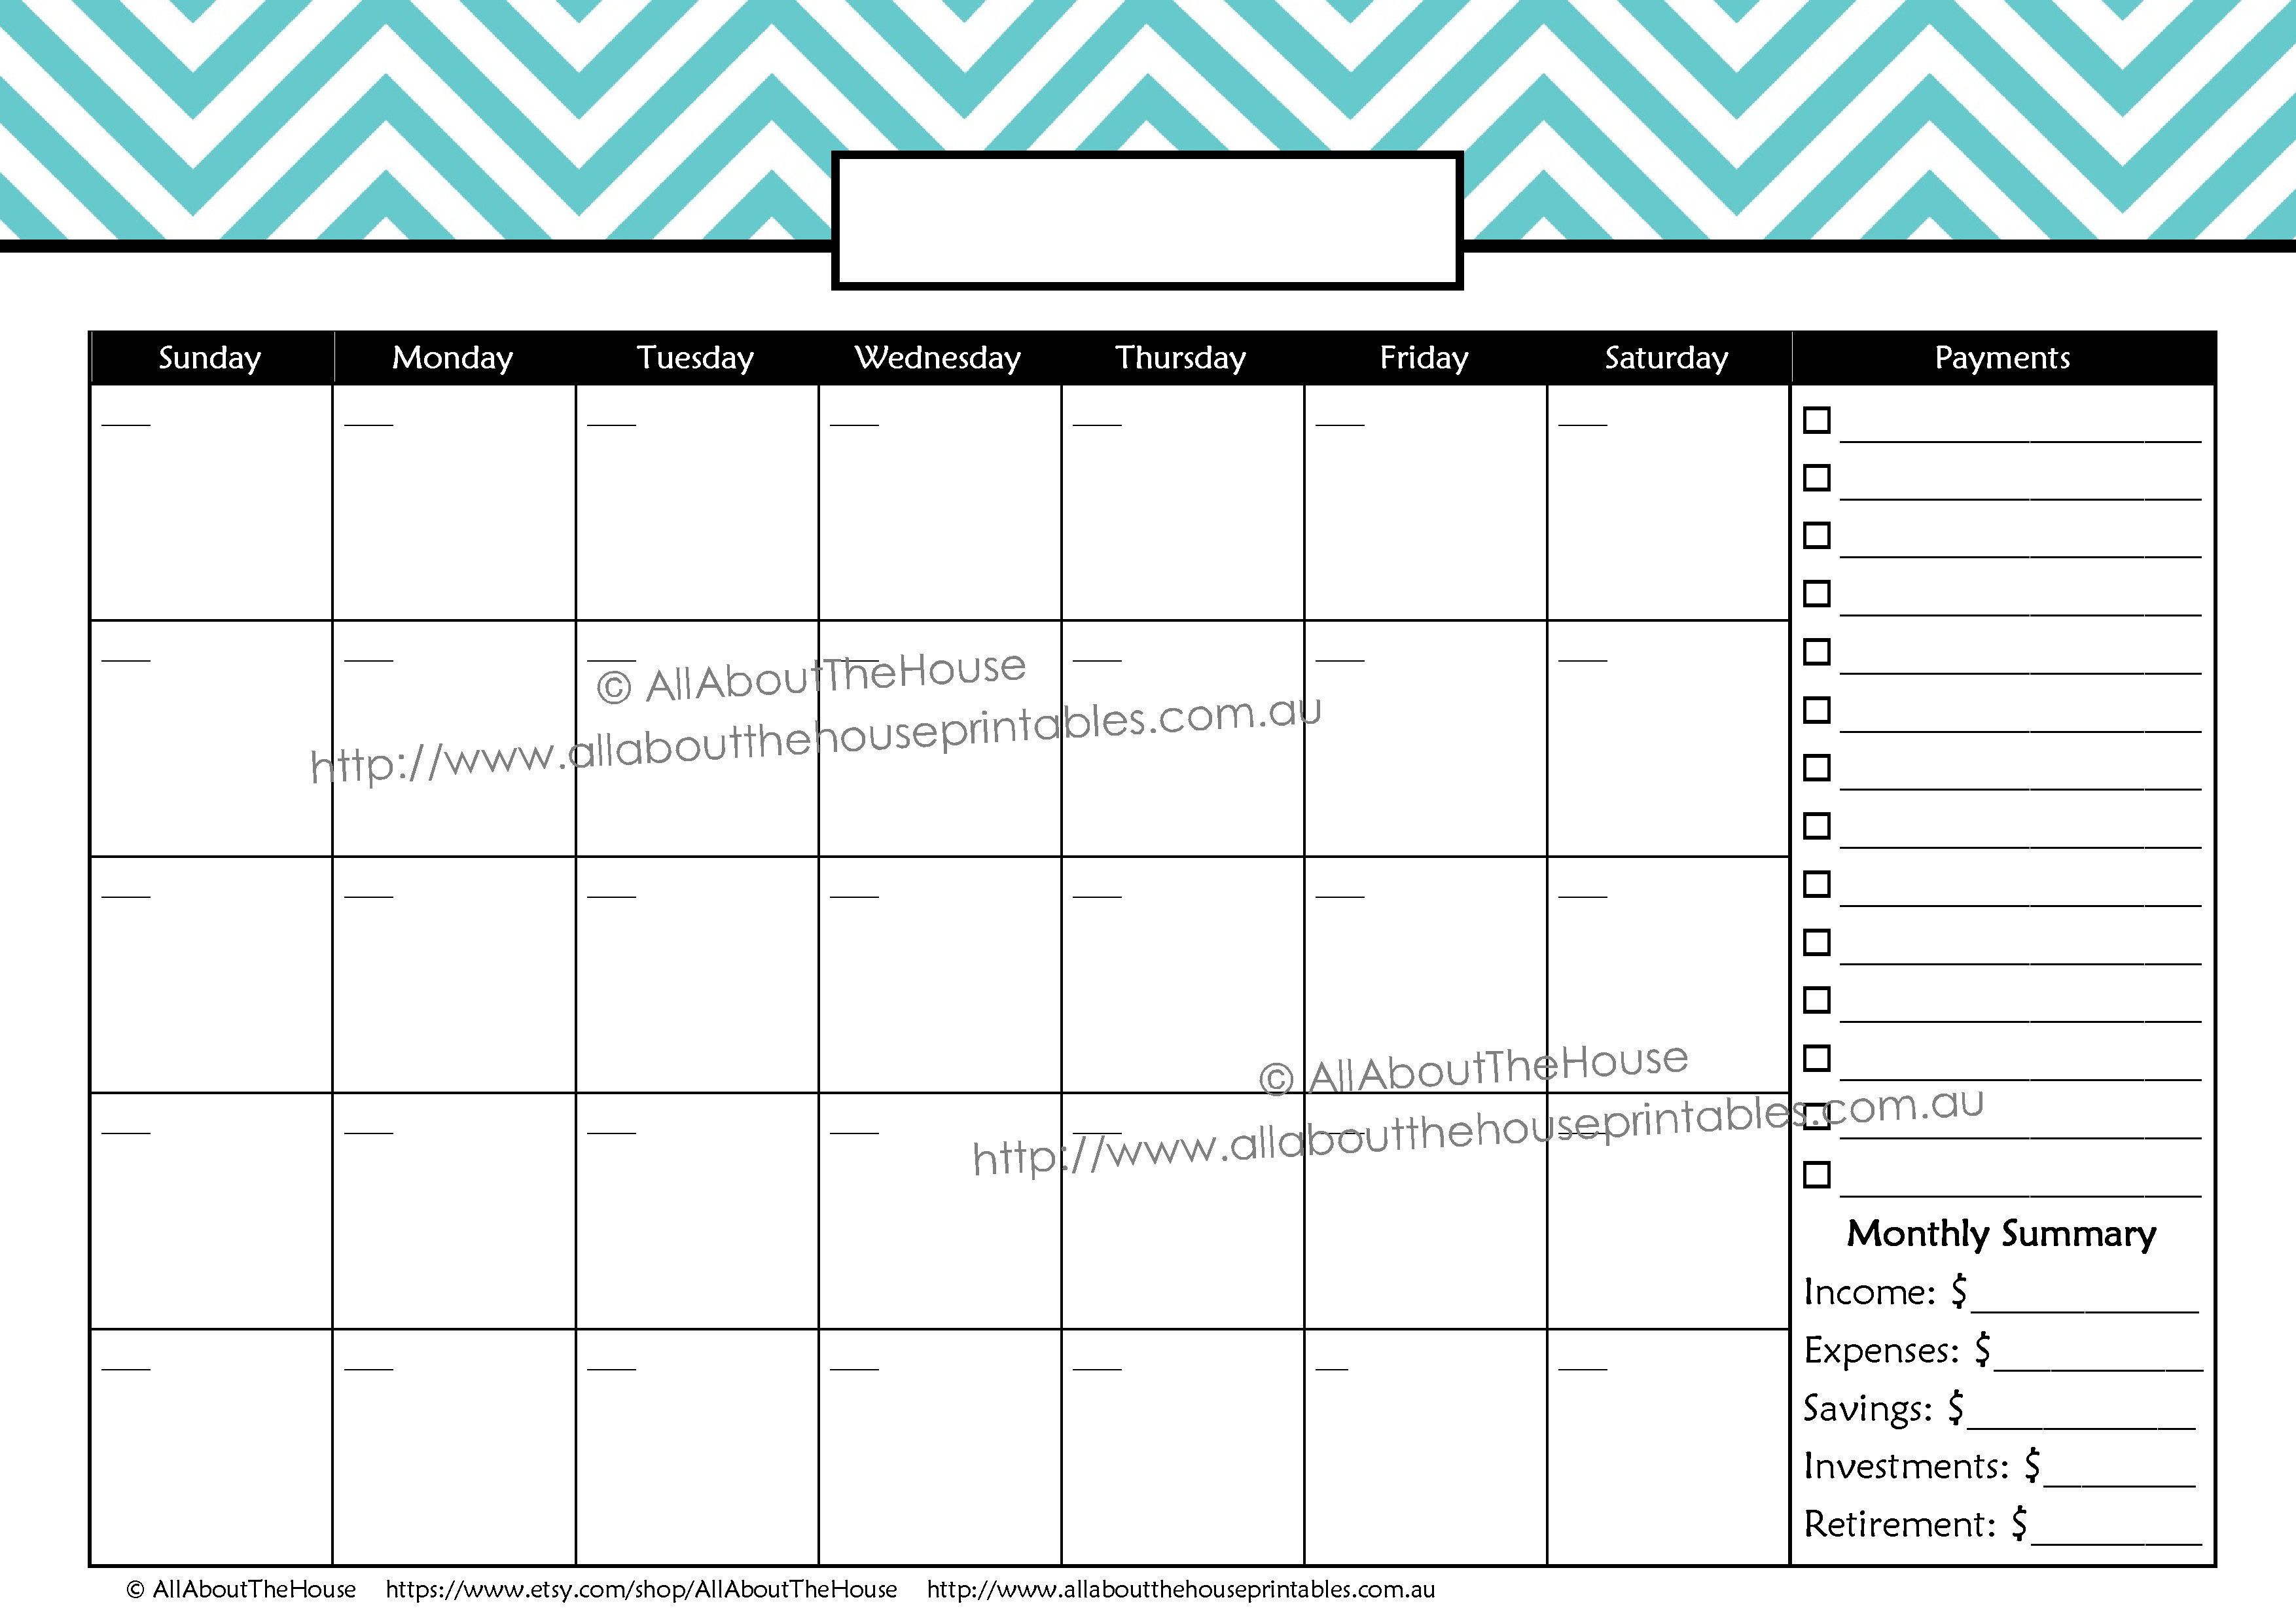 Bpay Planner | Allaboutthehouse Printables